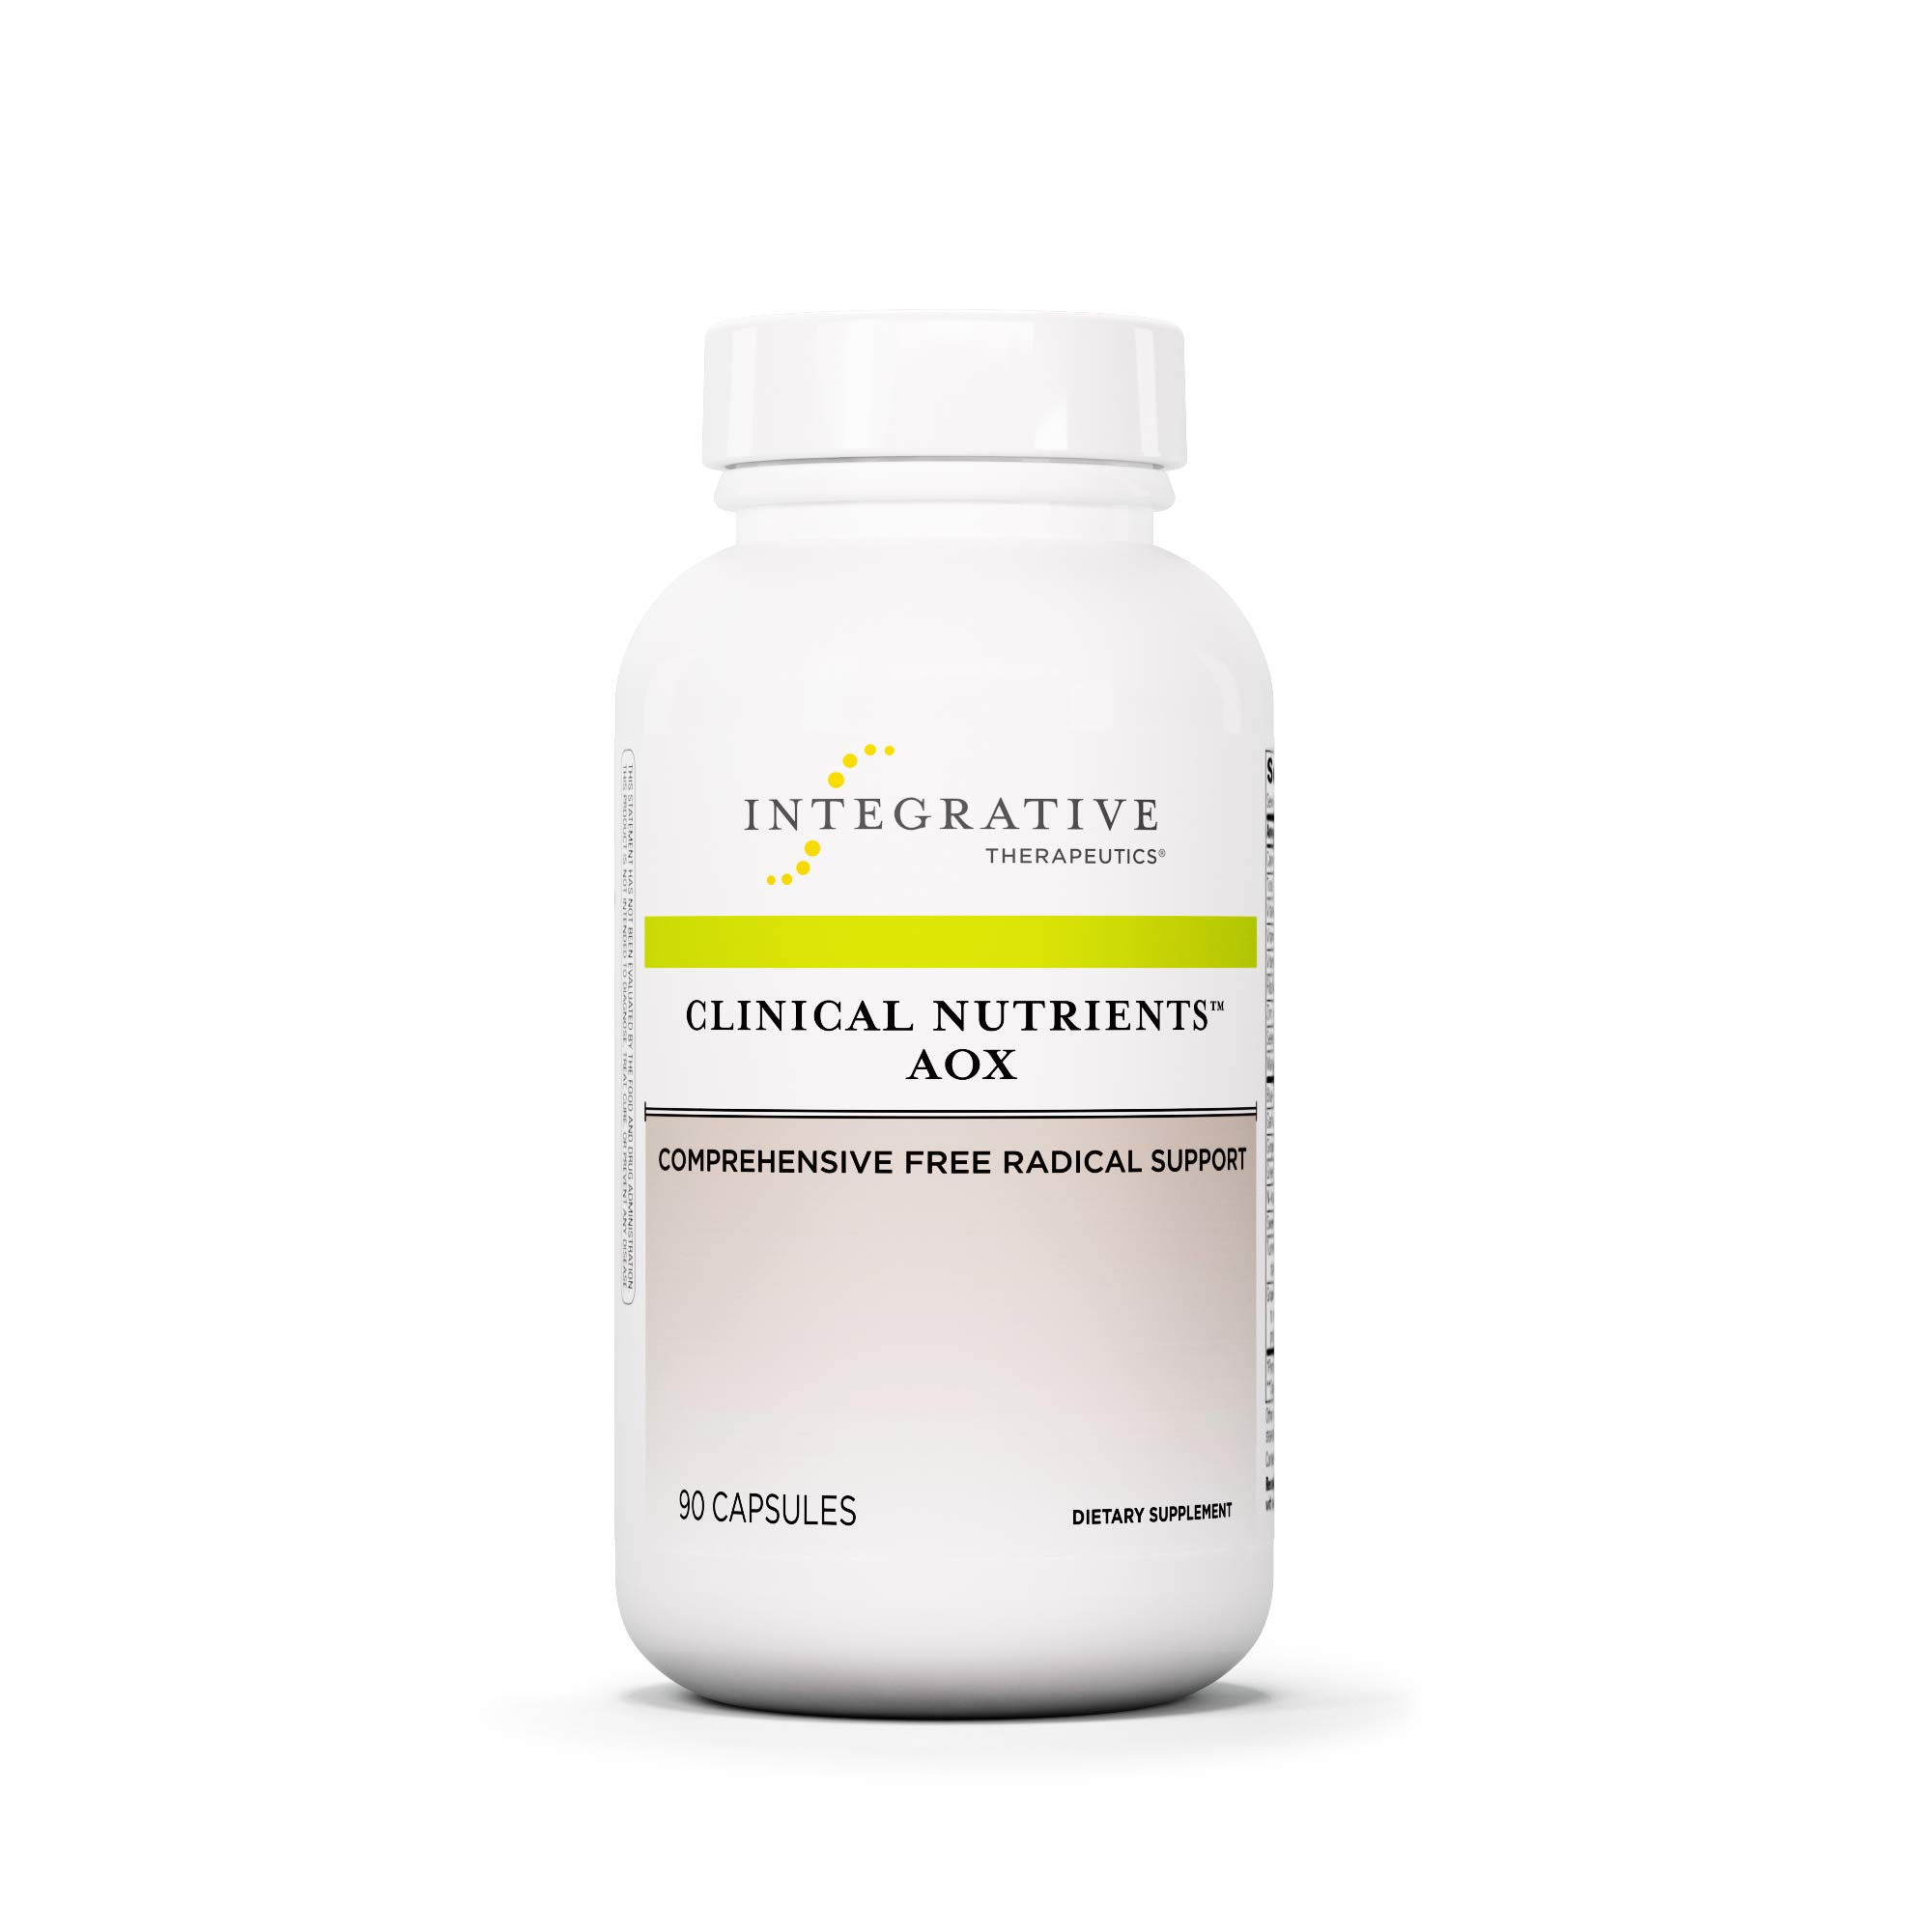 Integrative Therapeutics - Clinical Nutrients AOX - Comprehensive Free Radical Support - 90 Capsules